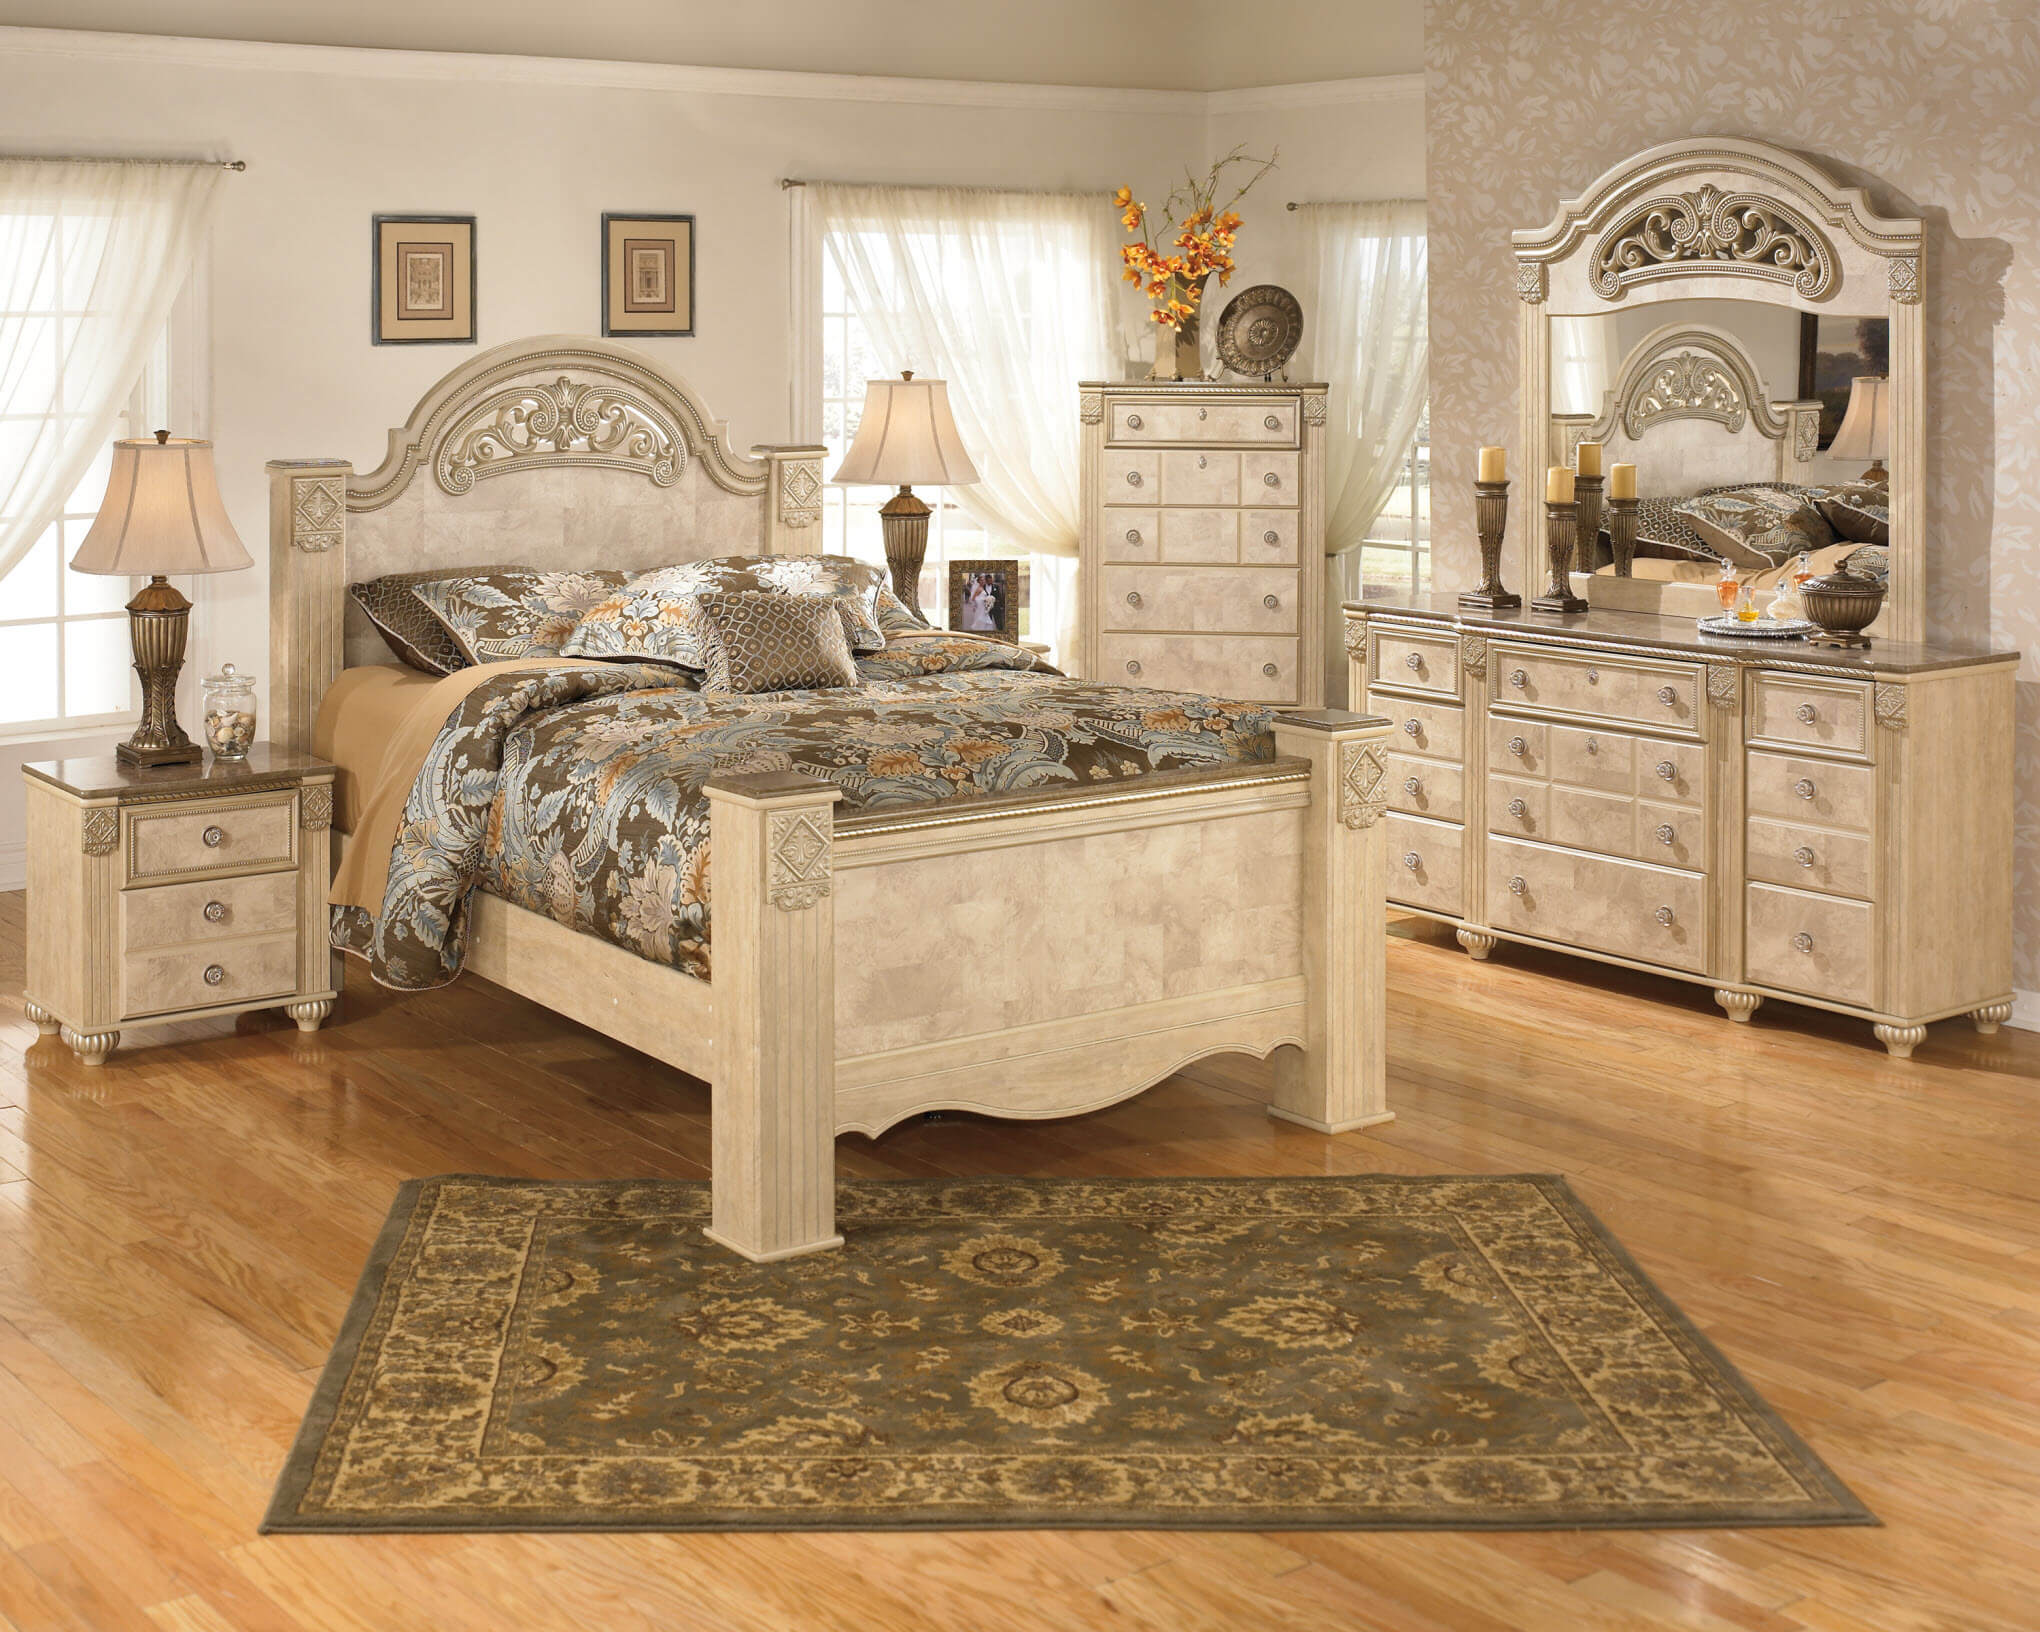 B346 Ashley Saveaha Old World Bedroom Set-DISCONTINUED